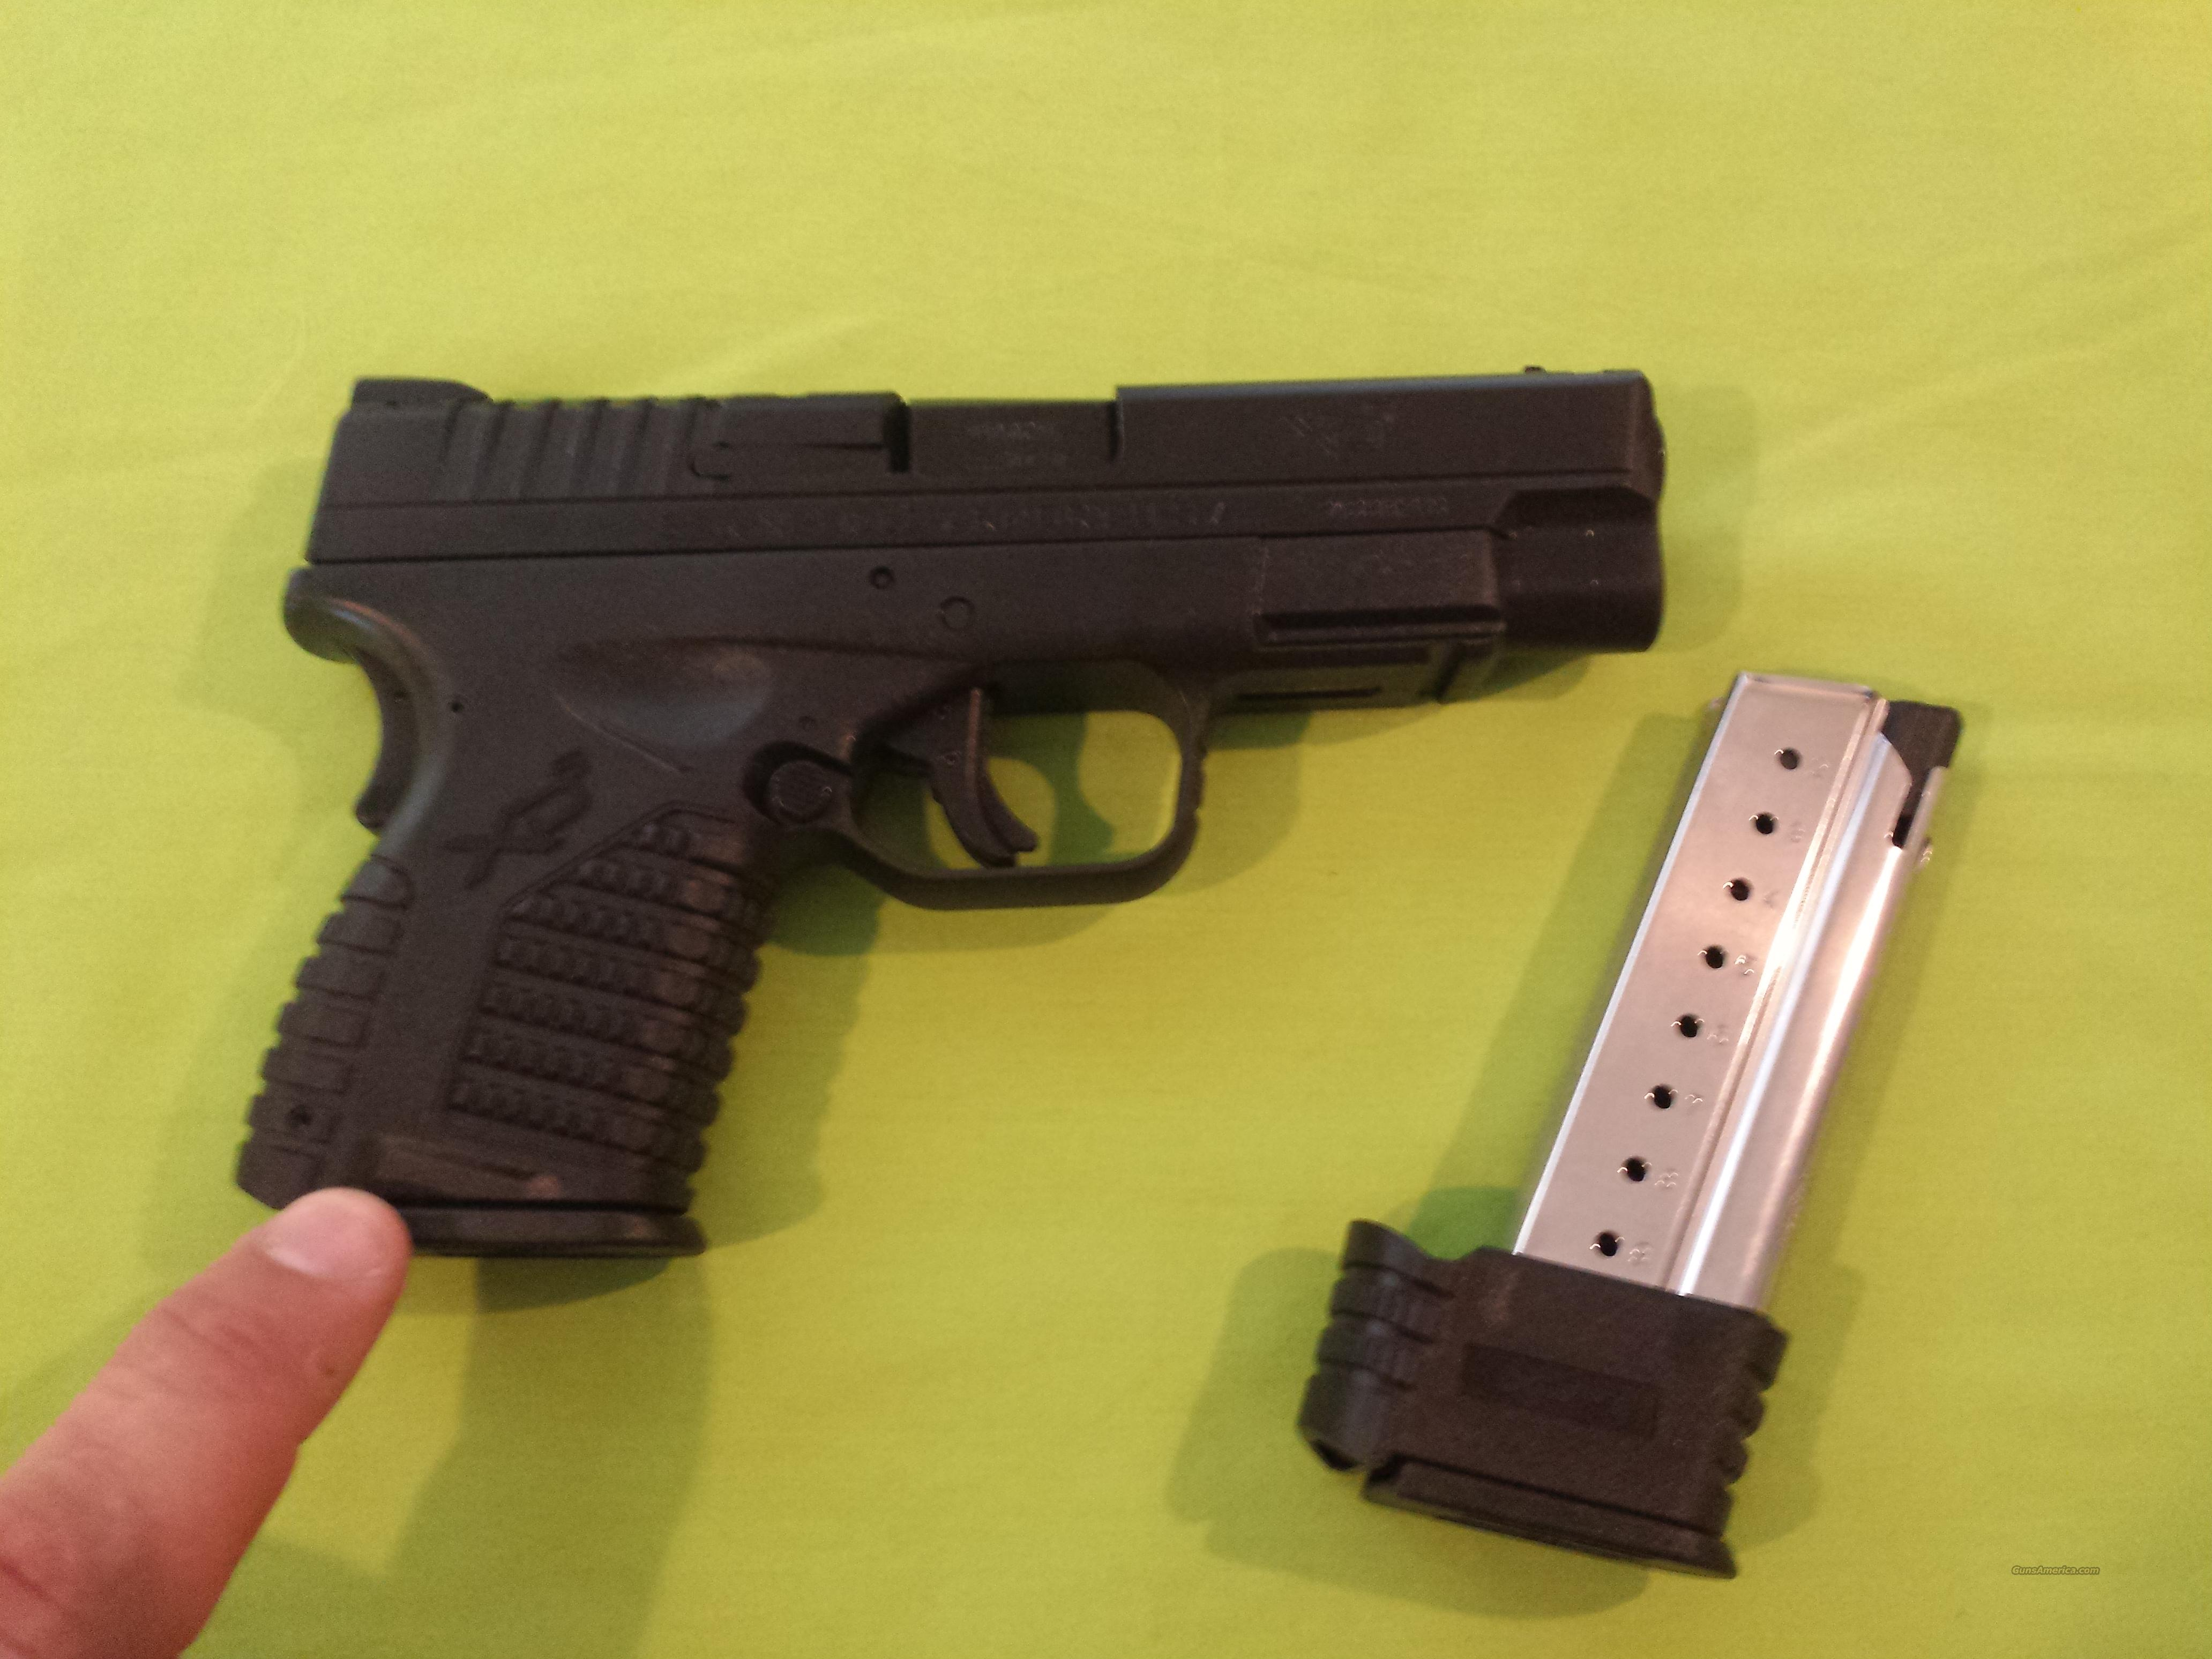 SPRINGFIELD XDS 9MM 4.0 BLACK 7RD MAG..NIB XD GEAR INCLUDED!  Guns > Pistols > Springfield Armory Pistols > XD-S